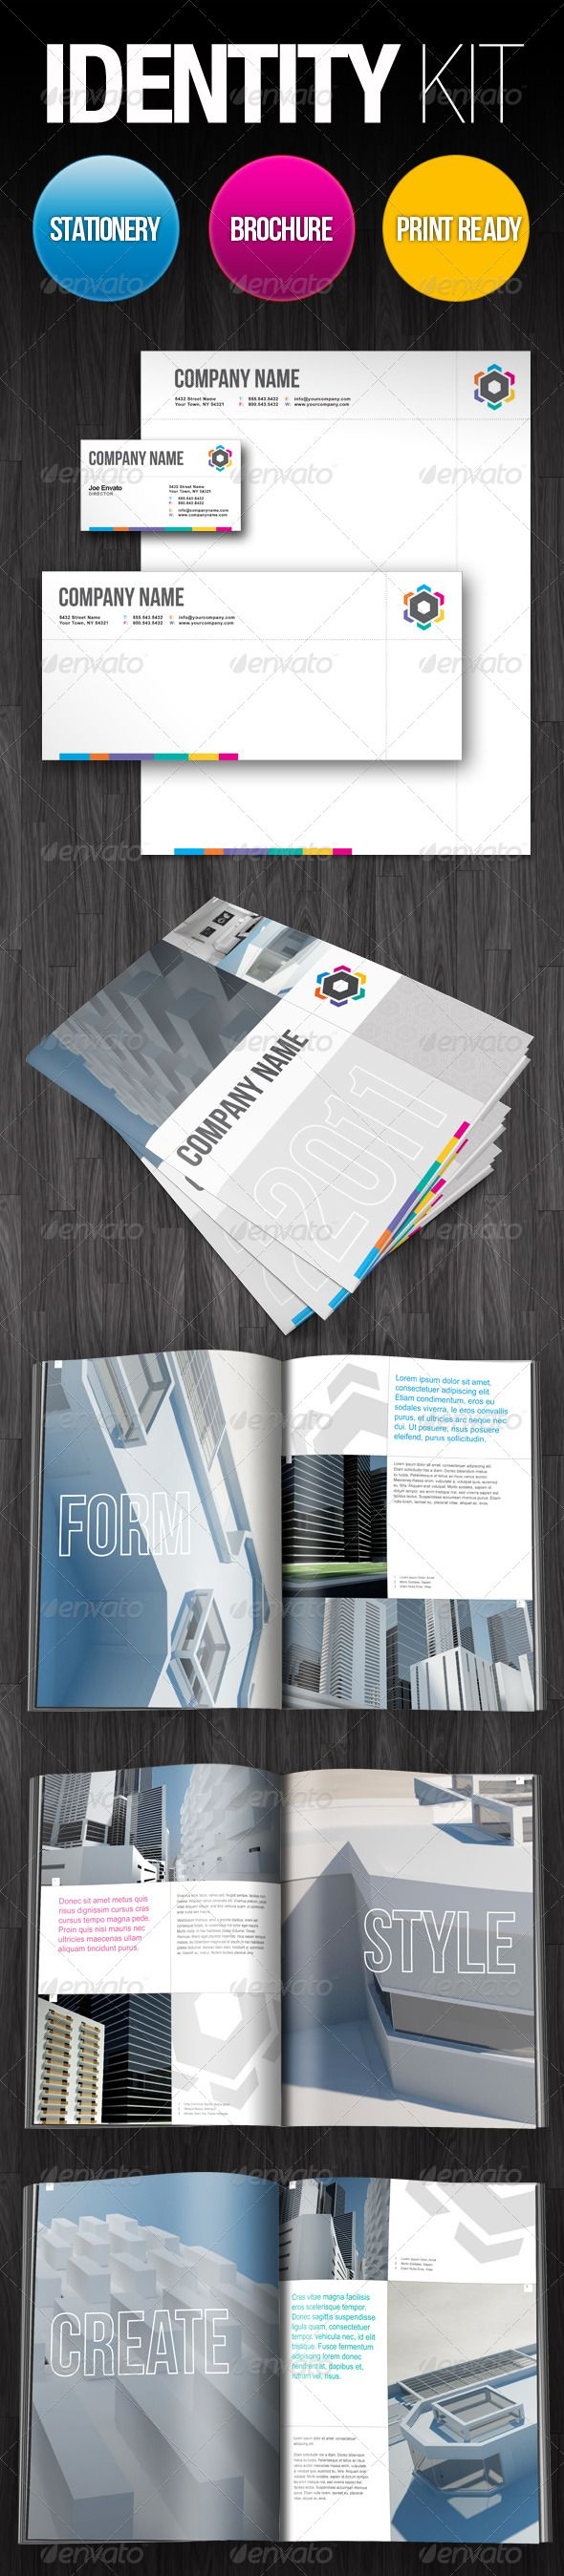 61 best indesign images on pinterest adobe indesign cards and identity kit indesign cs4 templates magicingreecefo Images